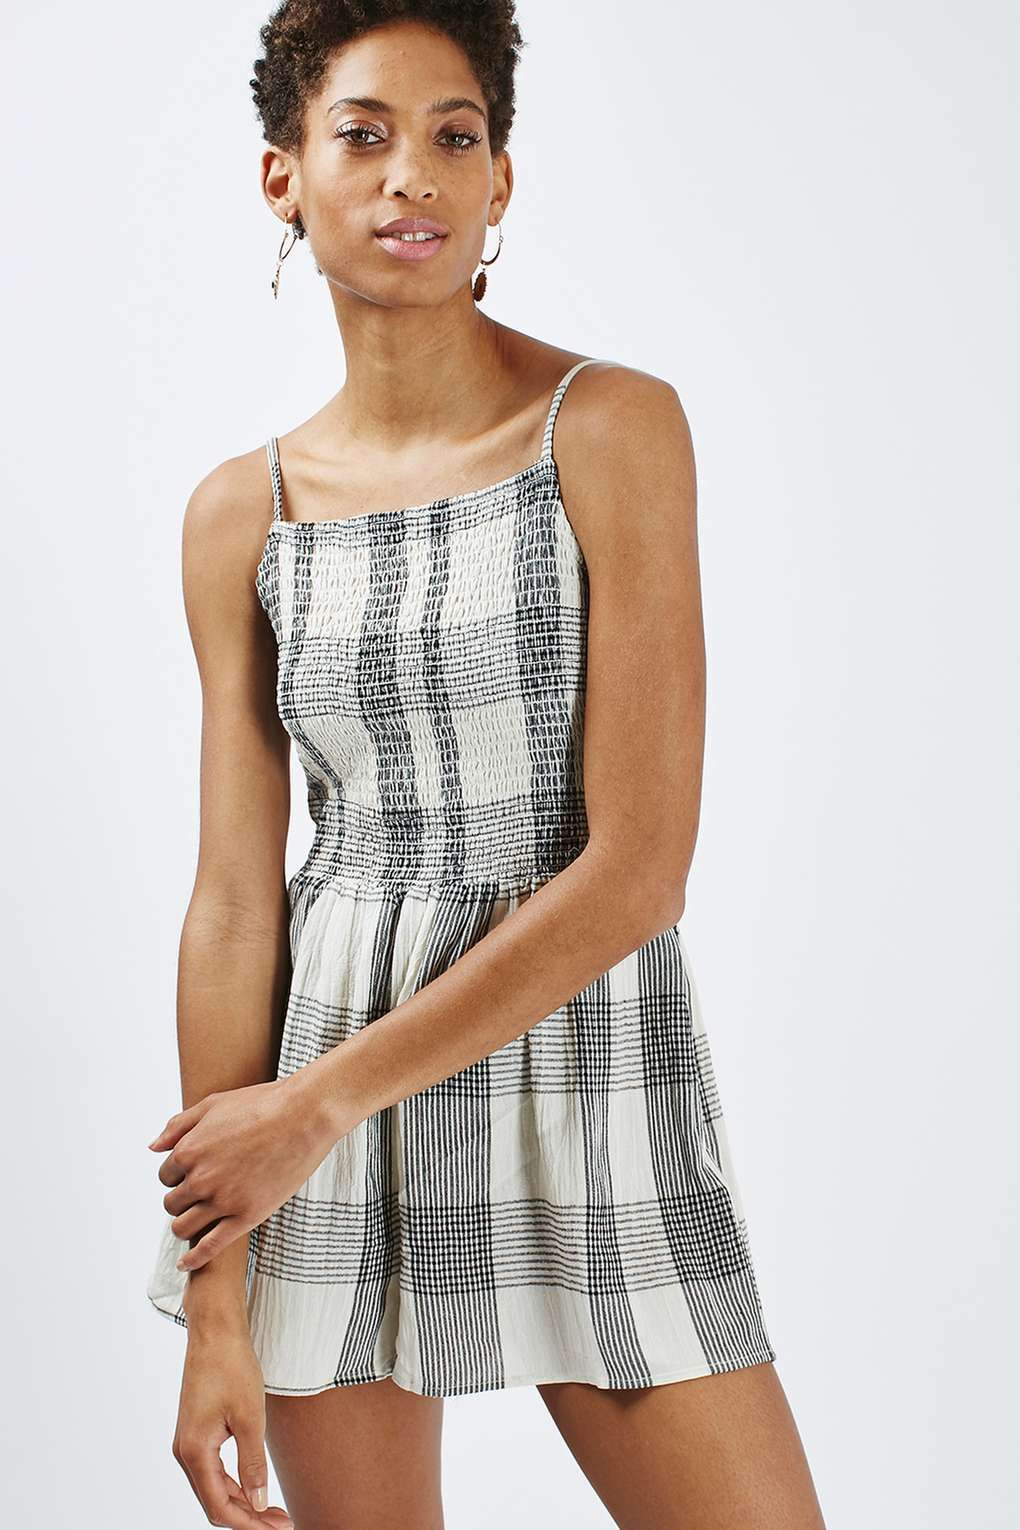 431108b7b5b Strappy Check Playsuit - Rompers   Jumpsuits - Clothing